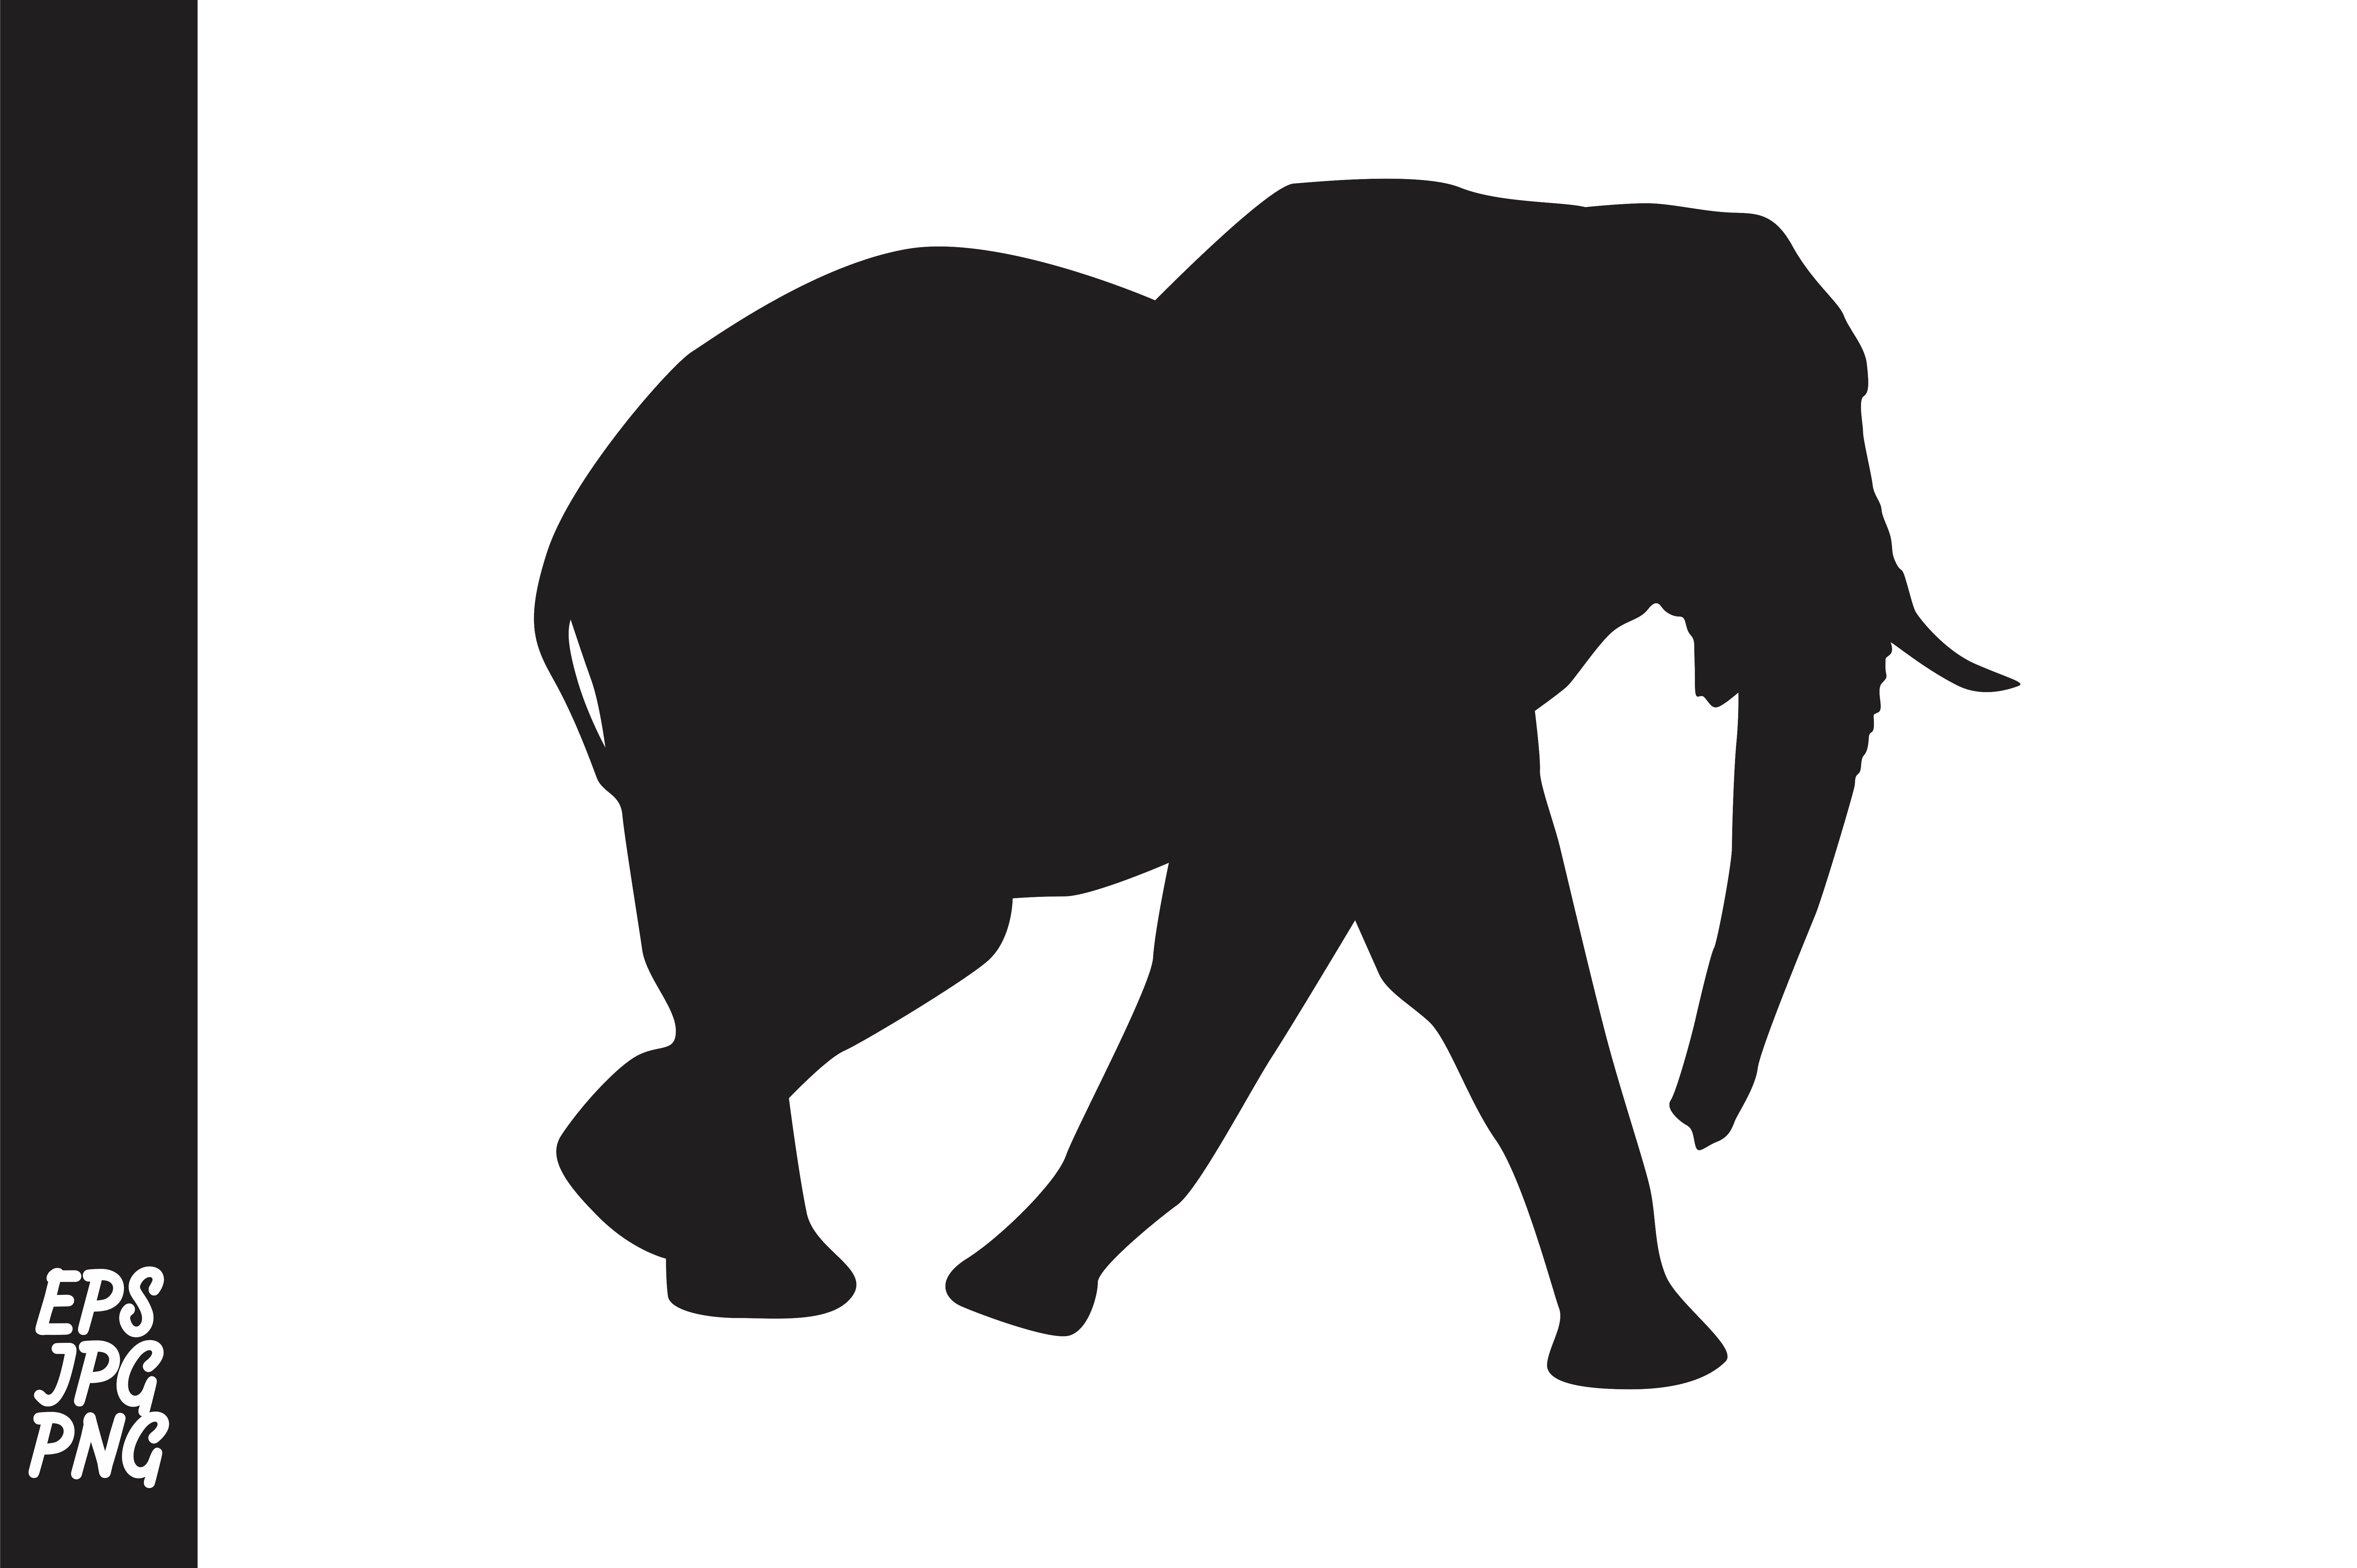 Download Free Elephant Silhouette Graphic By Arief Sapta Adjie Creative Fabrica for Cricut Explore, Silhouette and other cutting machines.